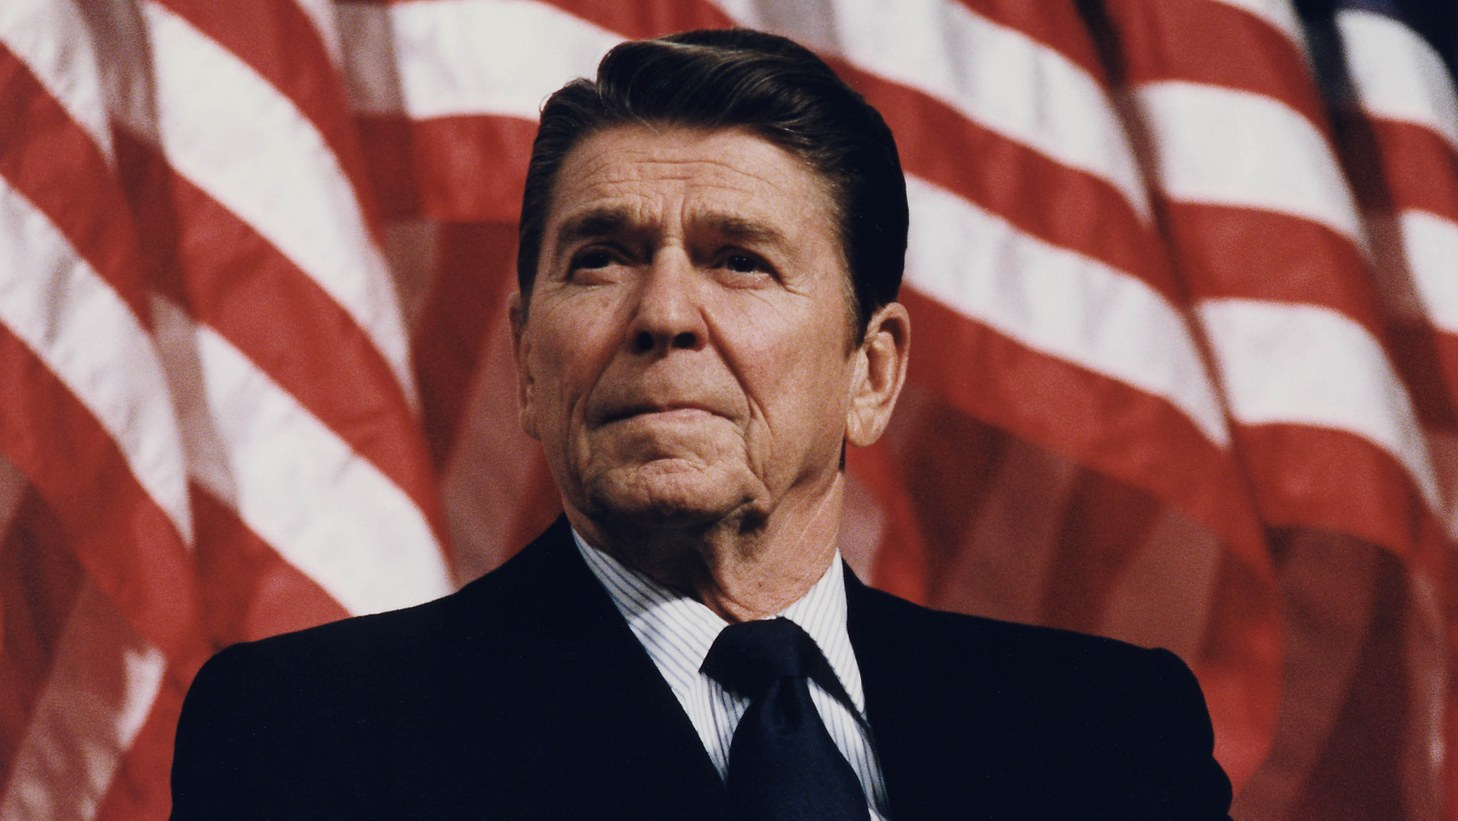 Over the last 100 years, most of the governors in California, like Ronald Reagan, have been Republicans.